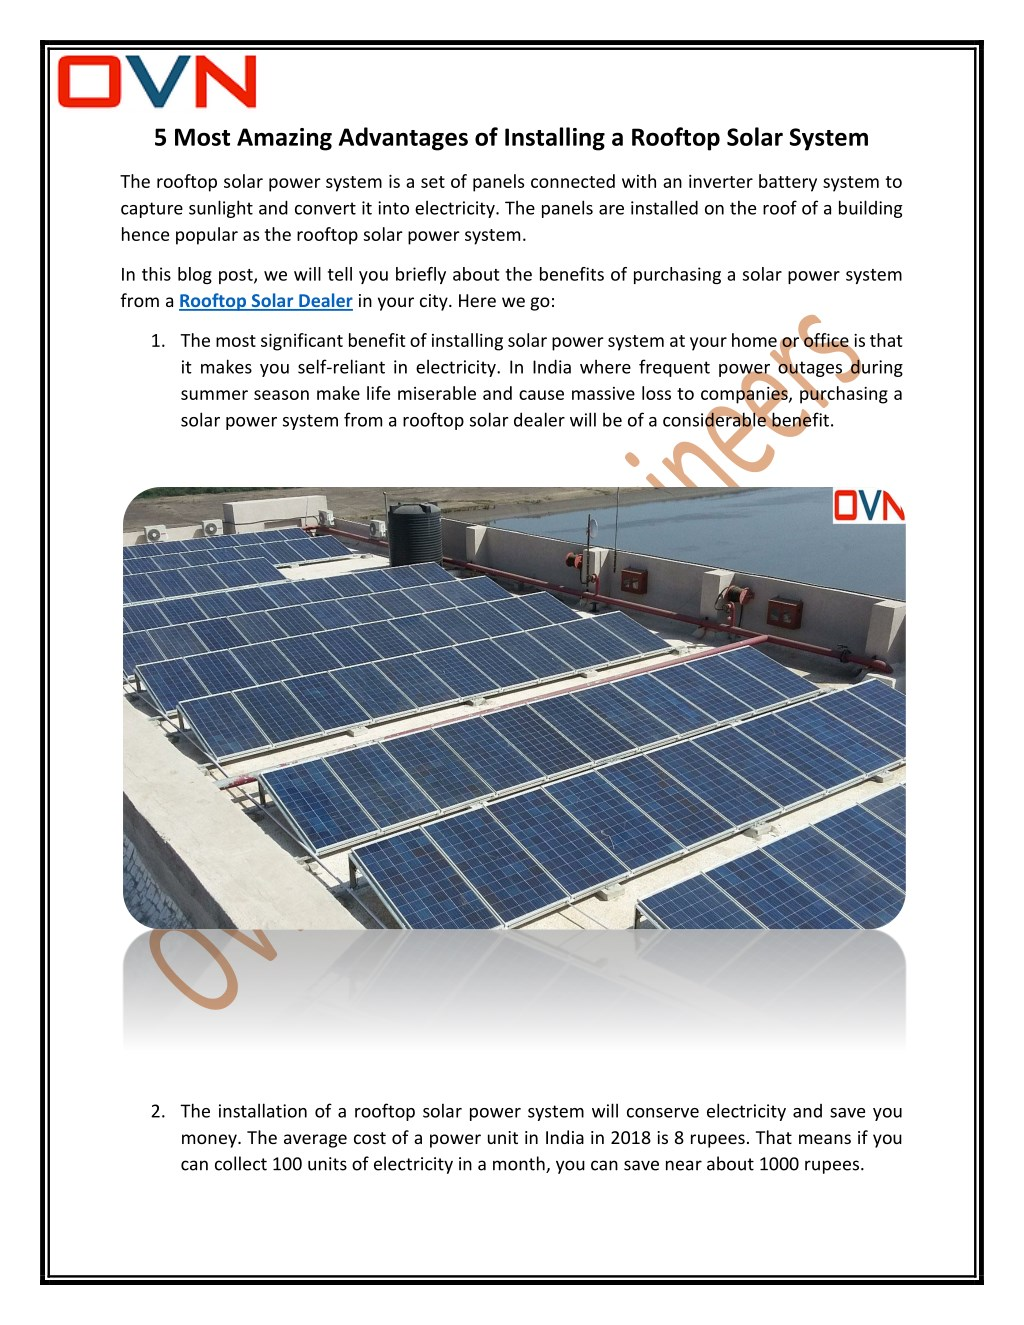 Ppt Rooftop Solar Dealer With Ovn Trading Point